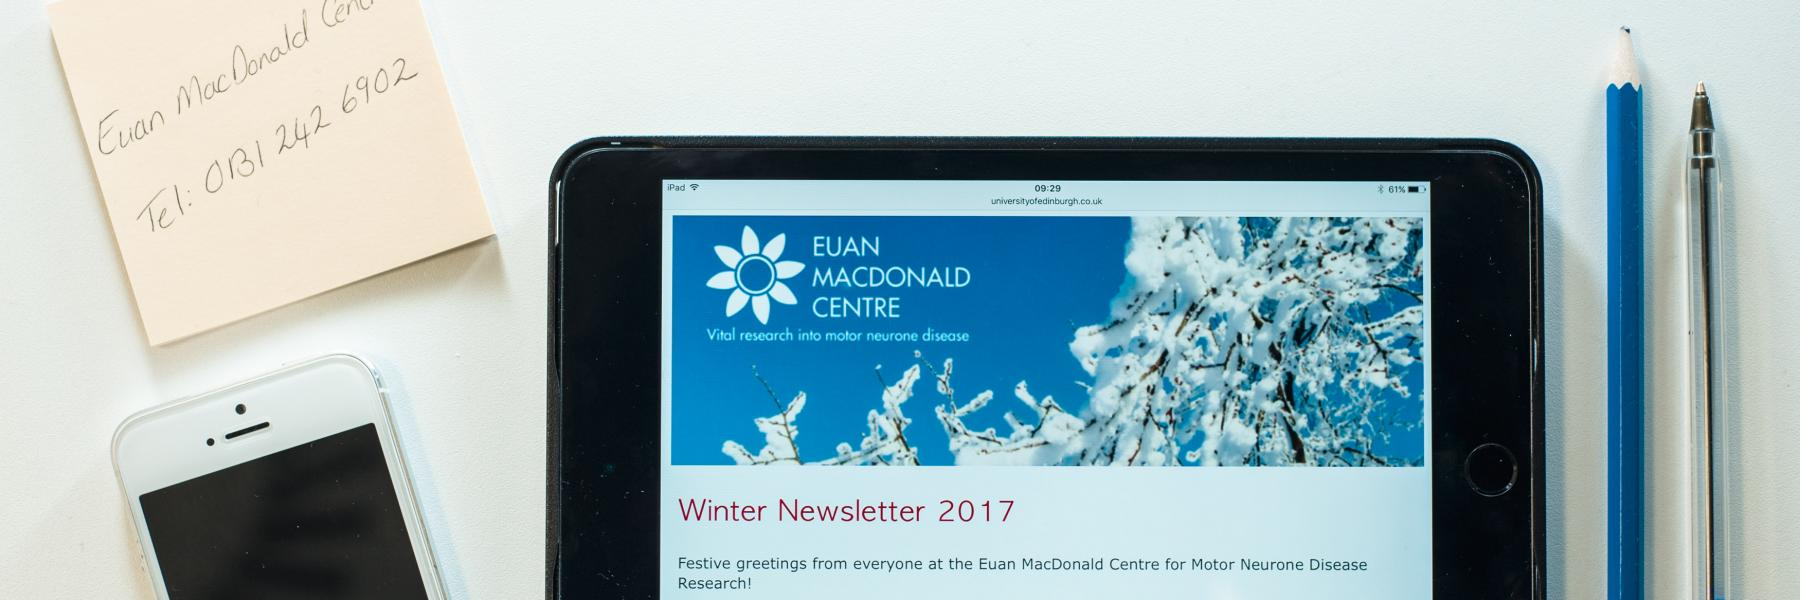 office items on a table with a tablet computer showing the Euan MacDonald Centre newsletter